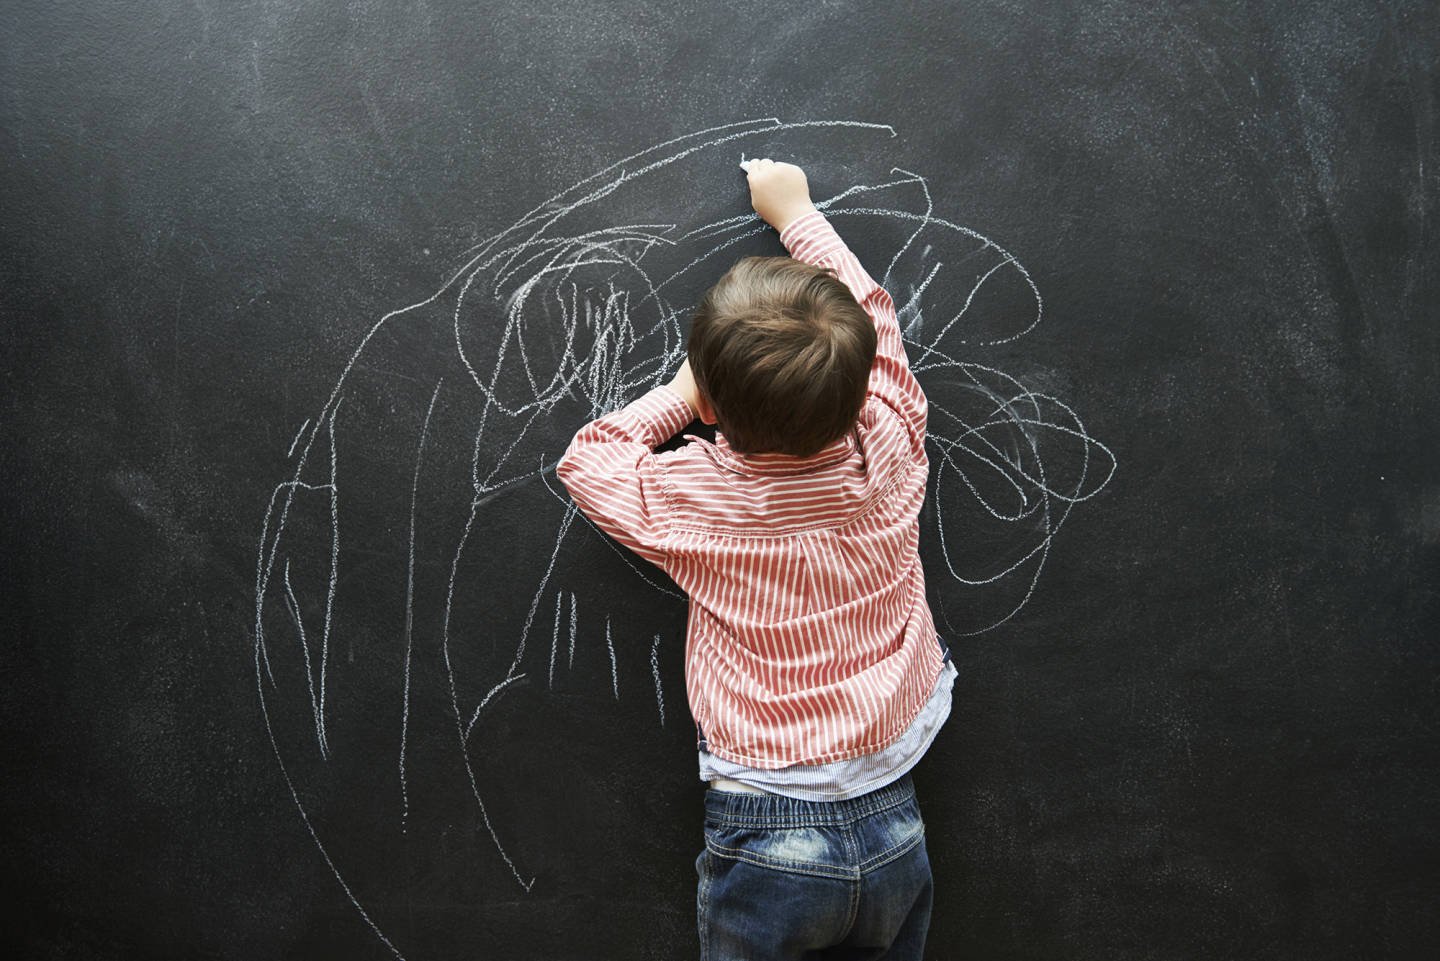 Adhd Diagnoses Why Youngest Kids In >> ADHD Diagnoses? Why the Youngest Kids in Class Are Most ...